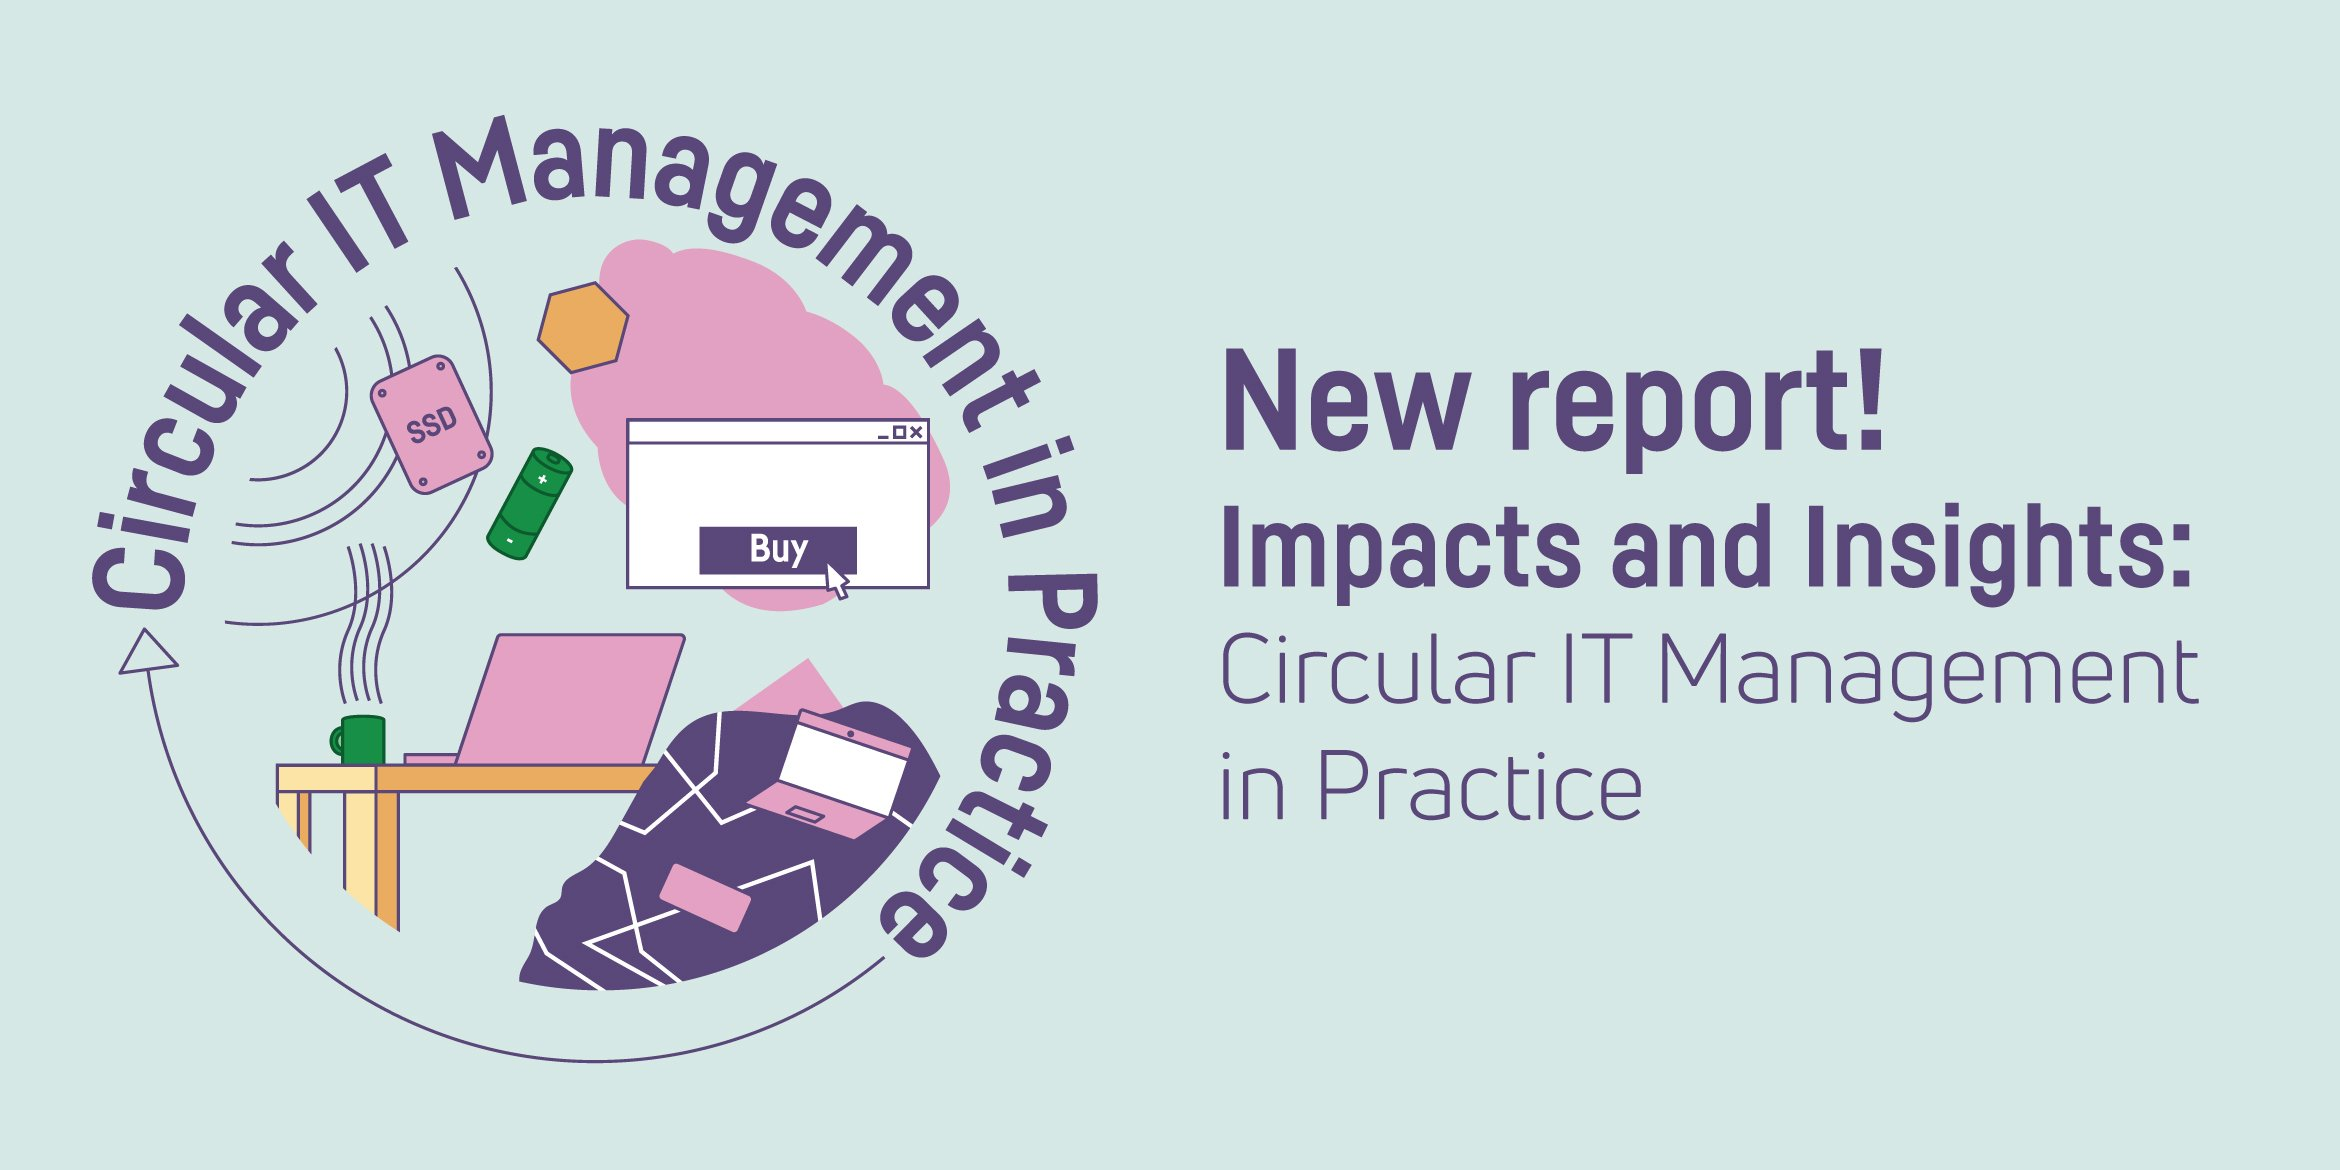 New report helps organizations with circular IT management